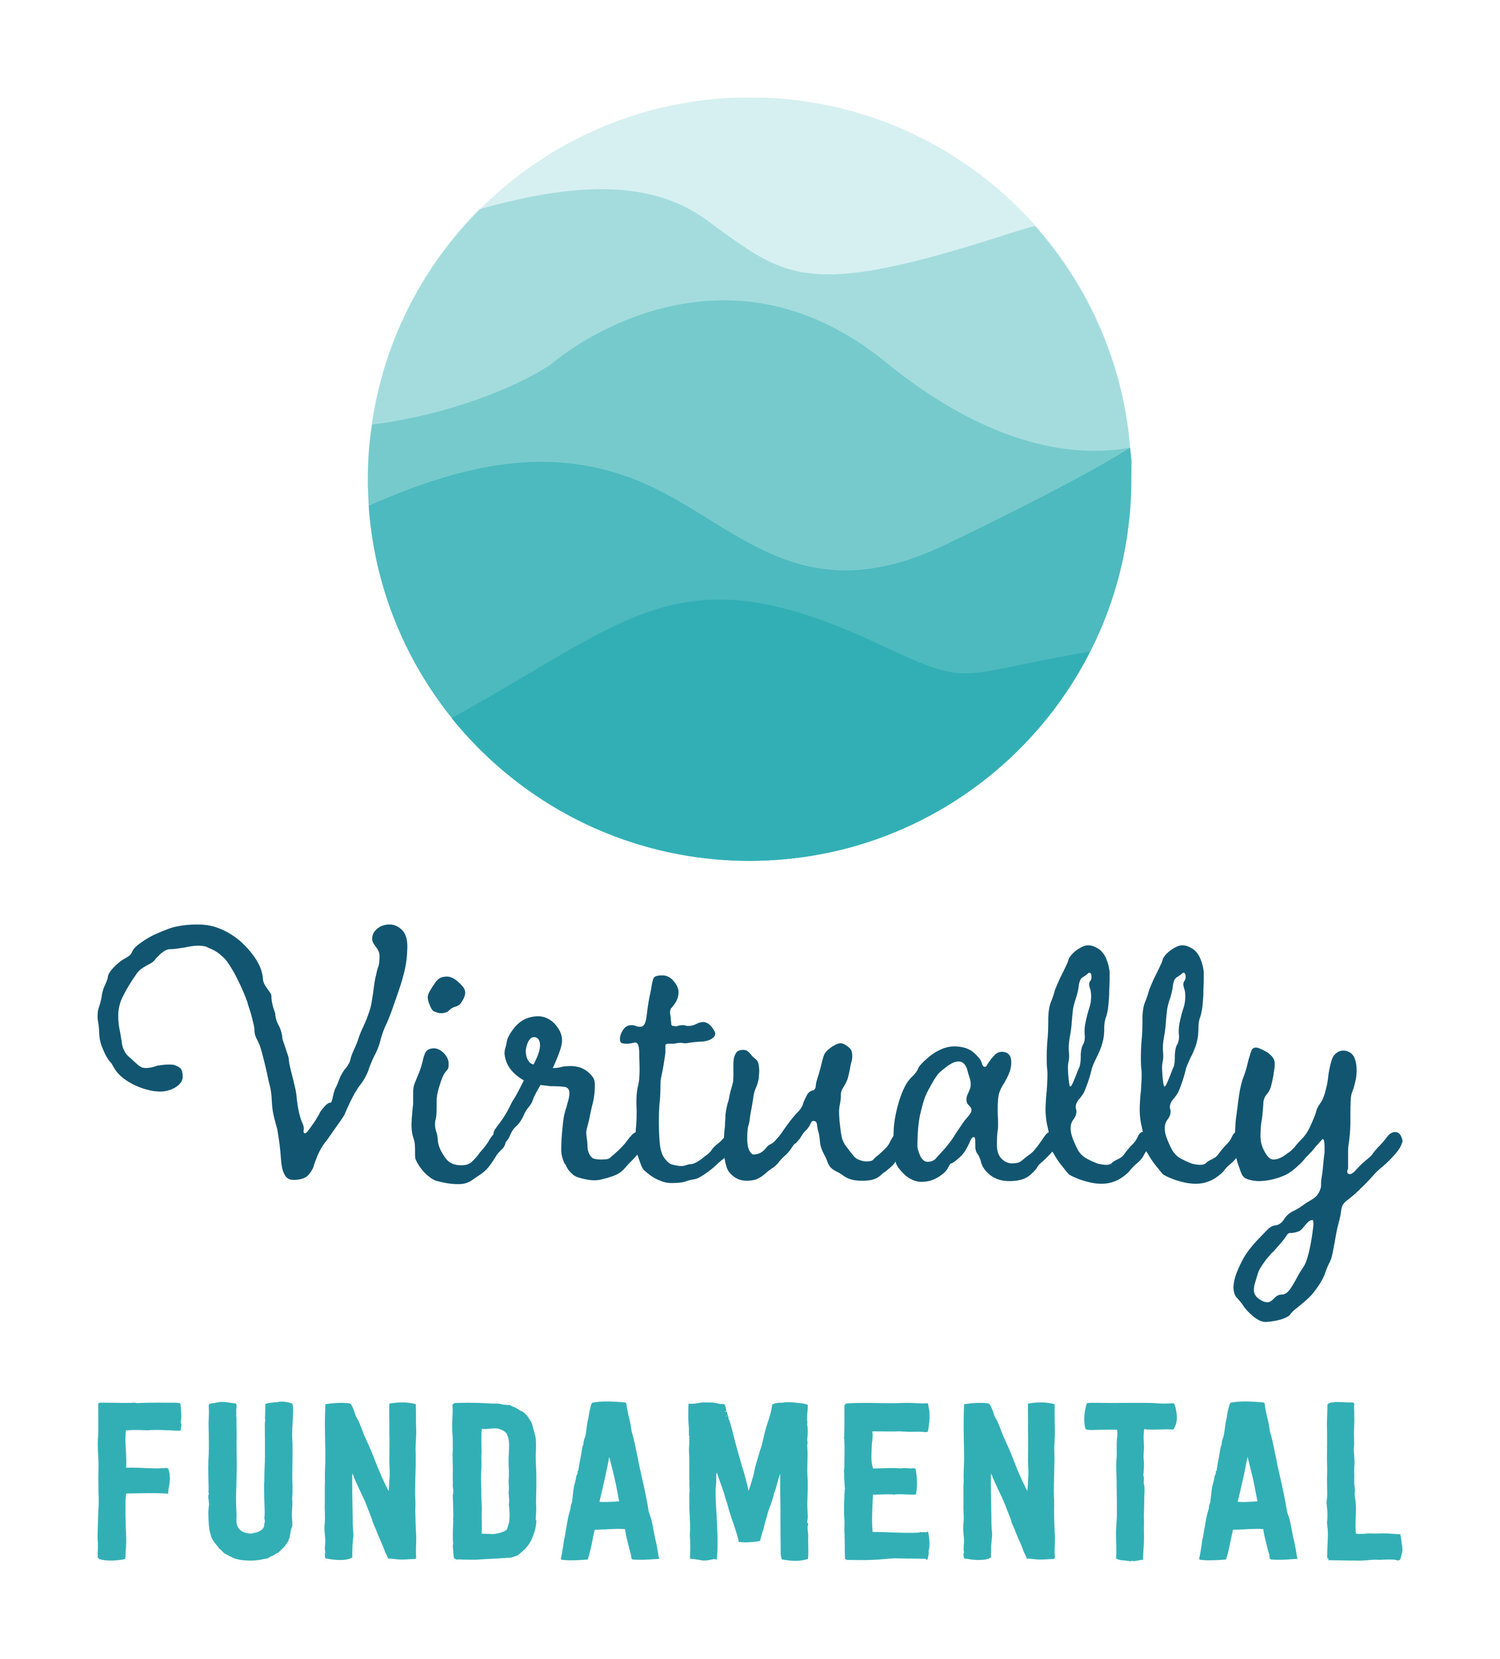 VIRTUALLY FUNDAMENTAL